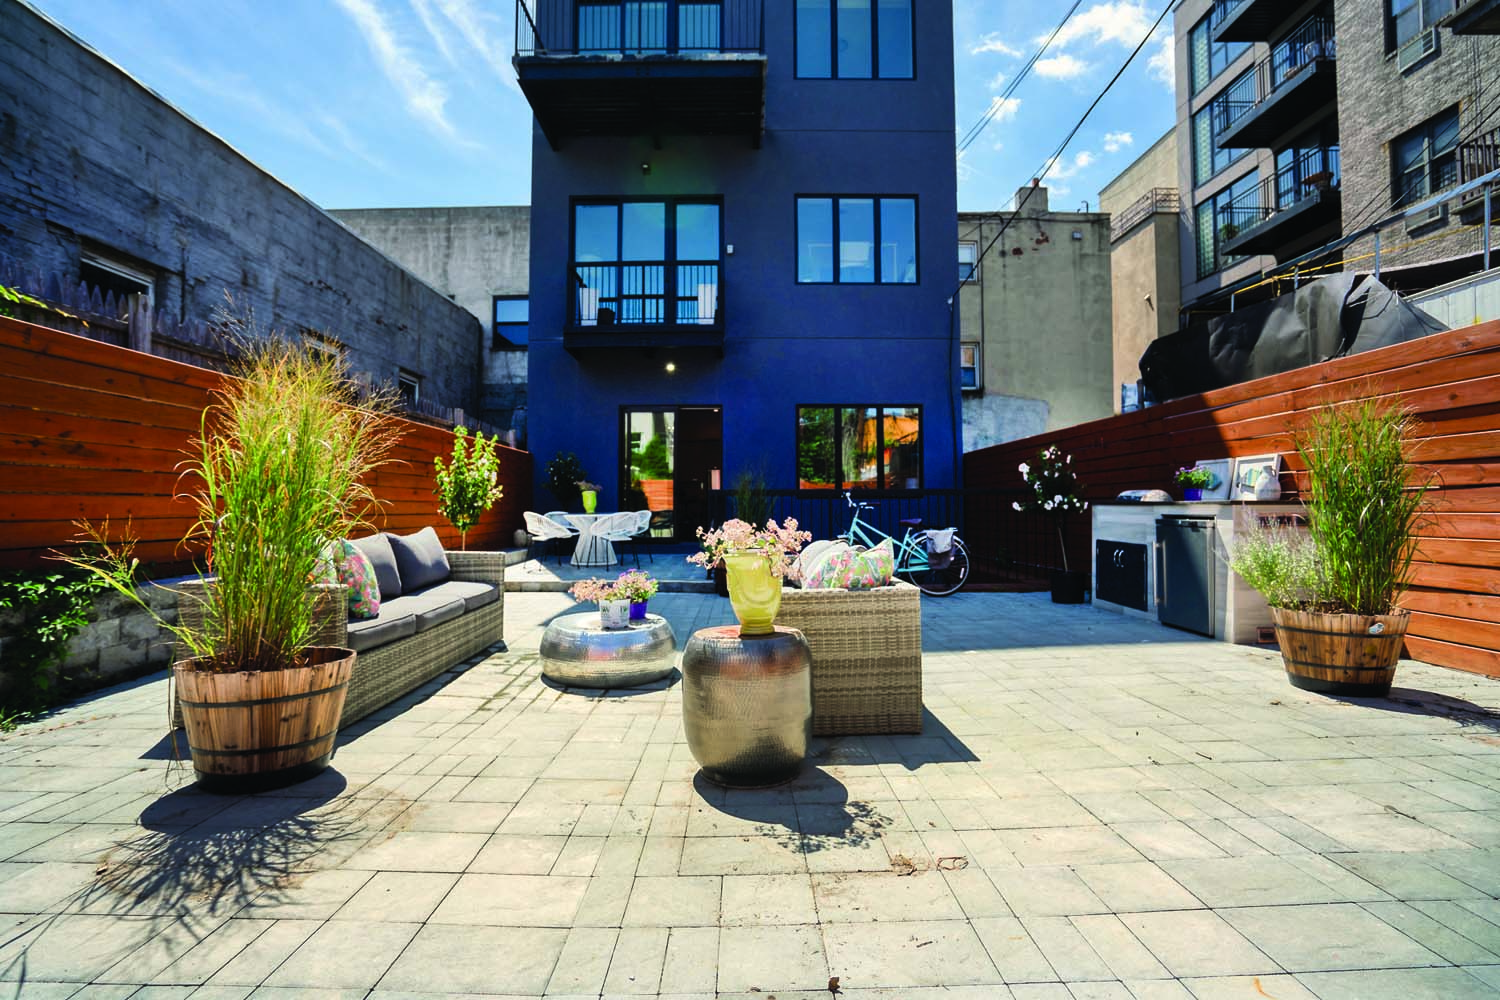 Apartment for sale at 11 Conselyea Street, Apt 1B